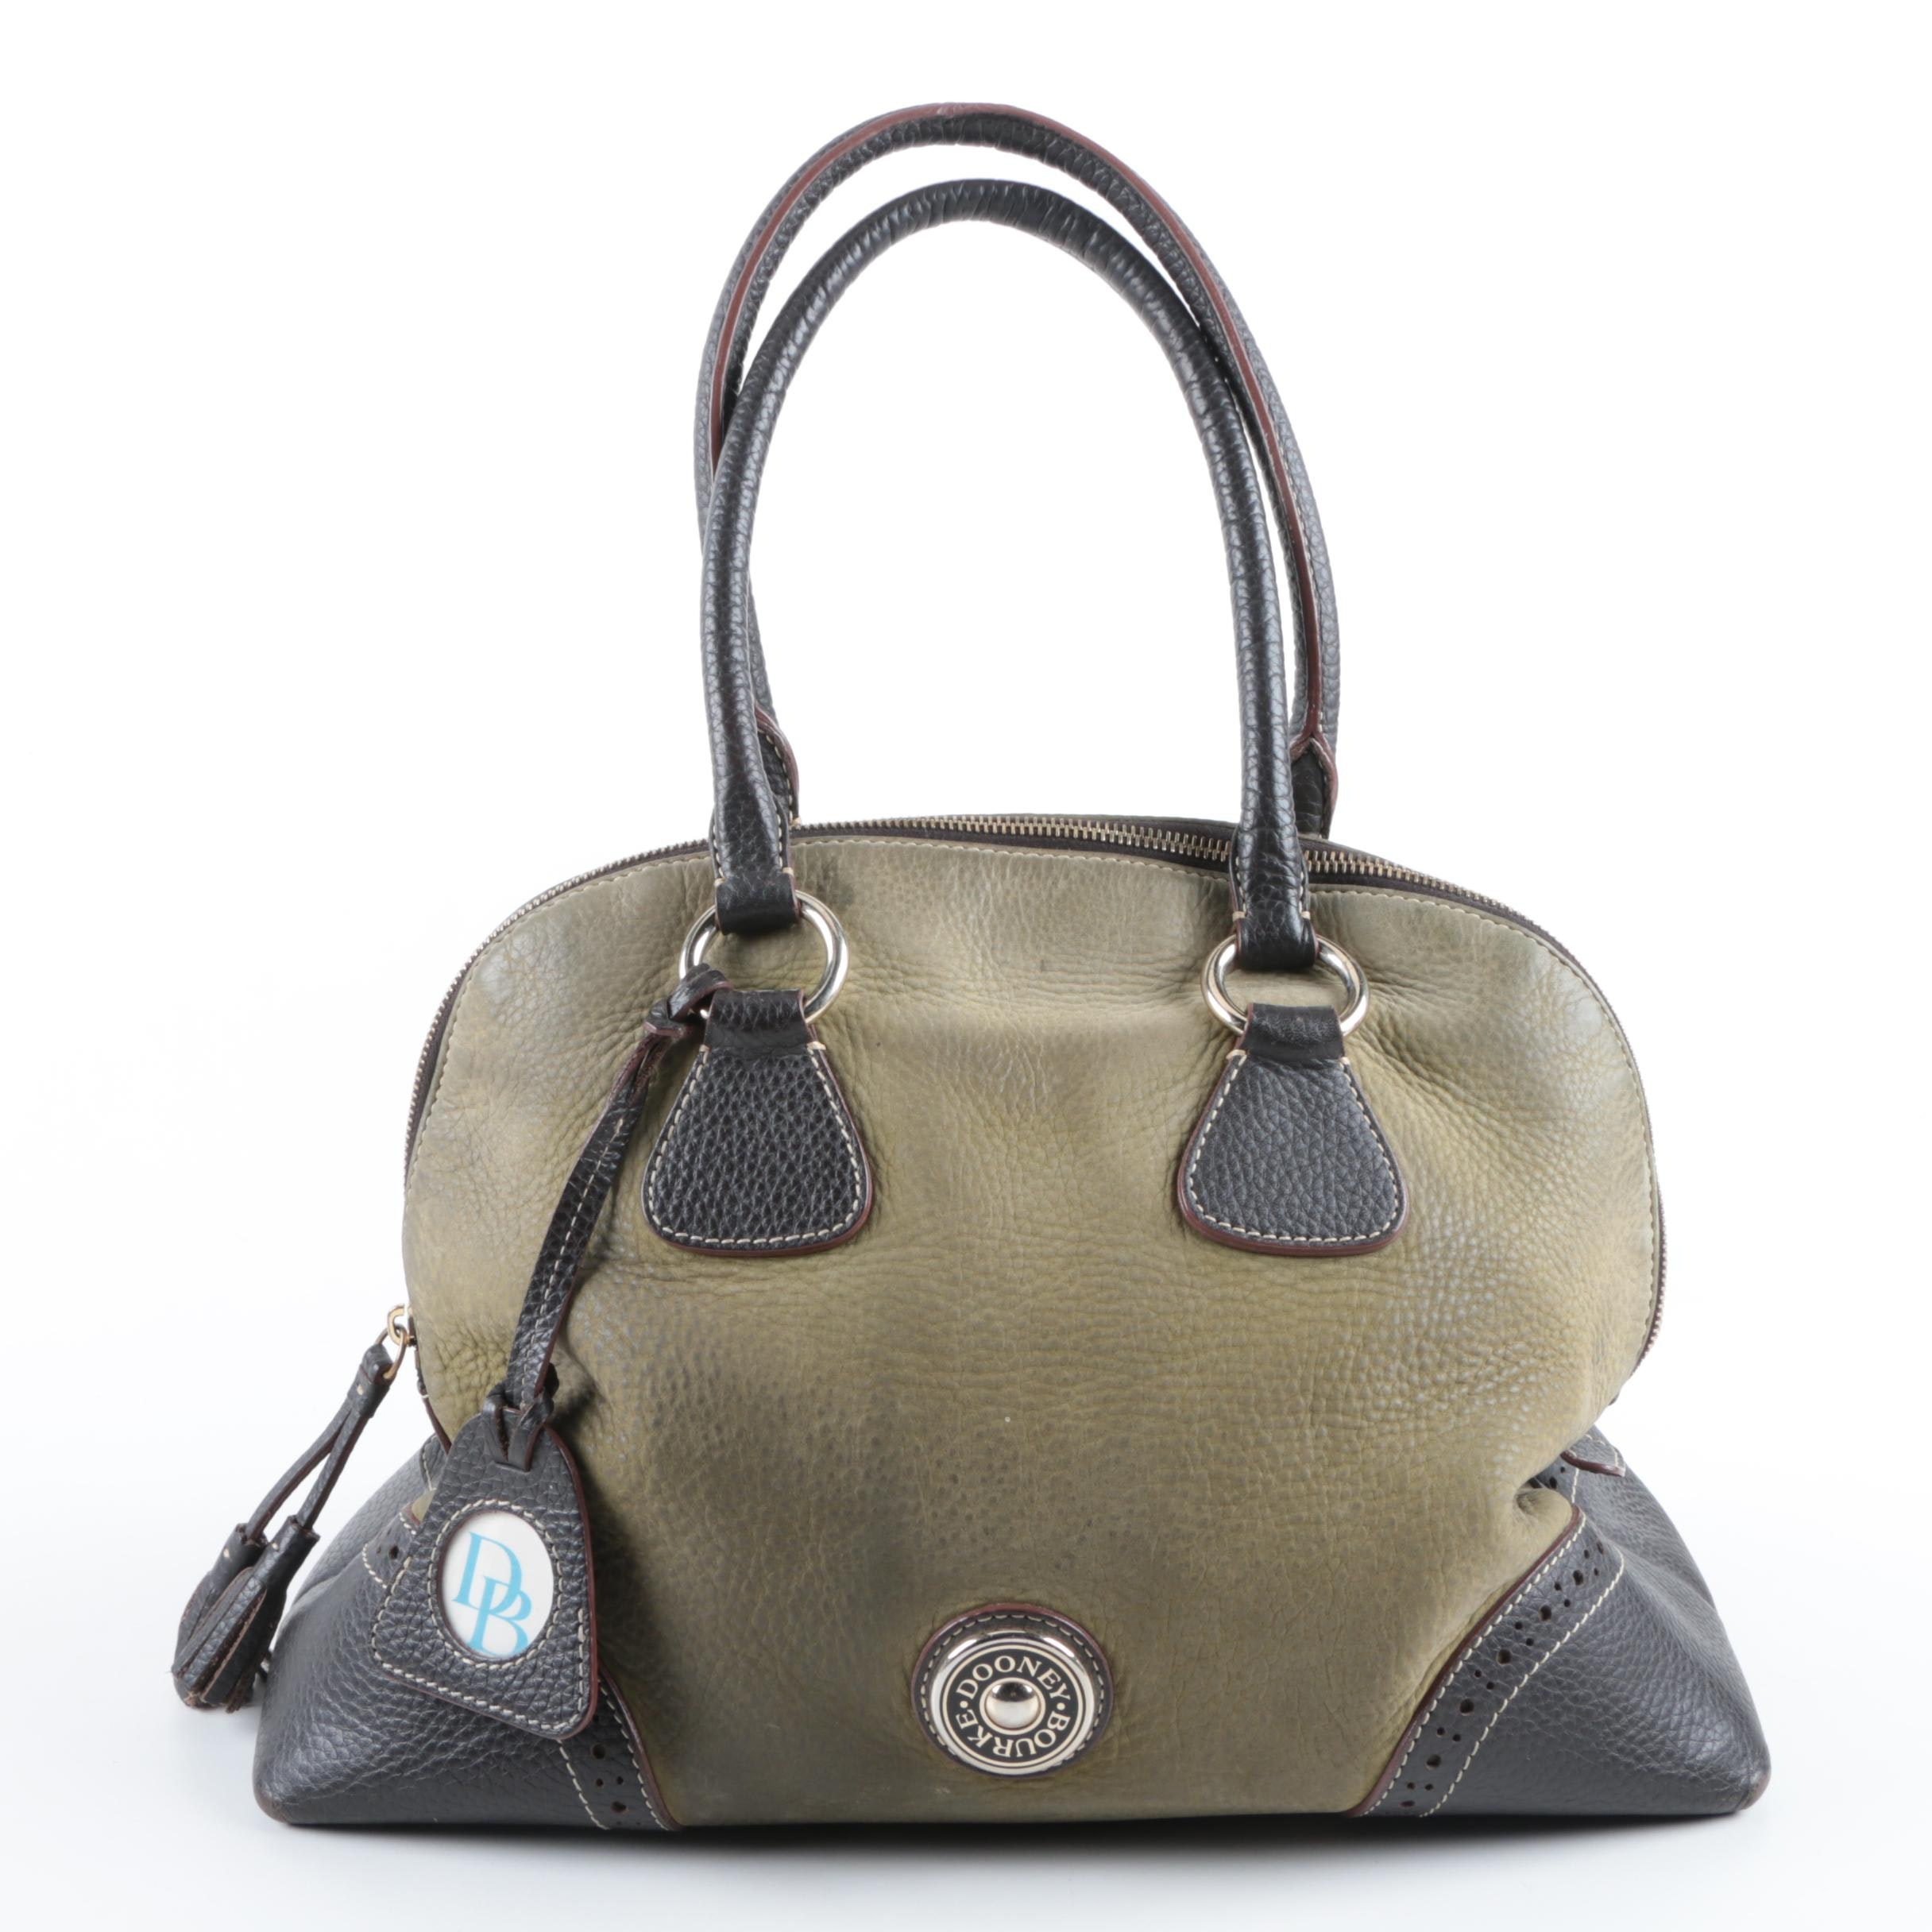 Dooney & Bourke Olive Green and Brown Leather Handbag